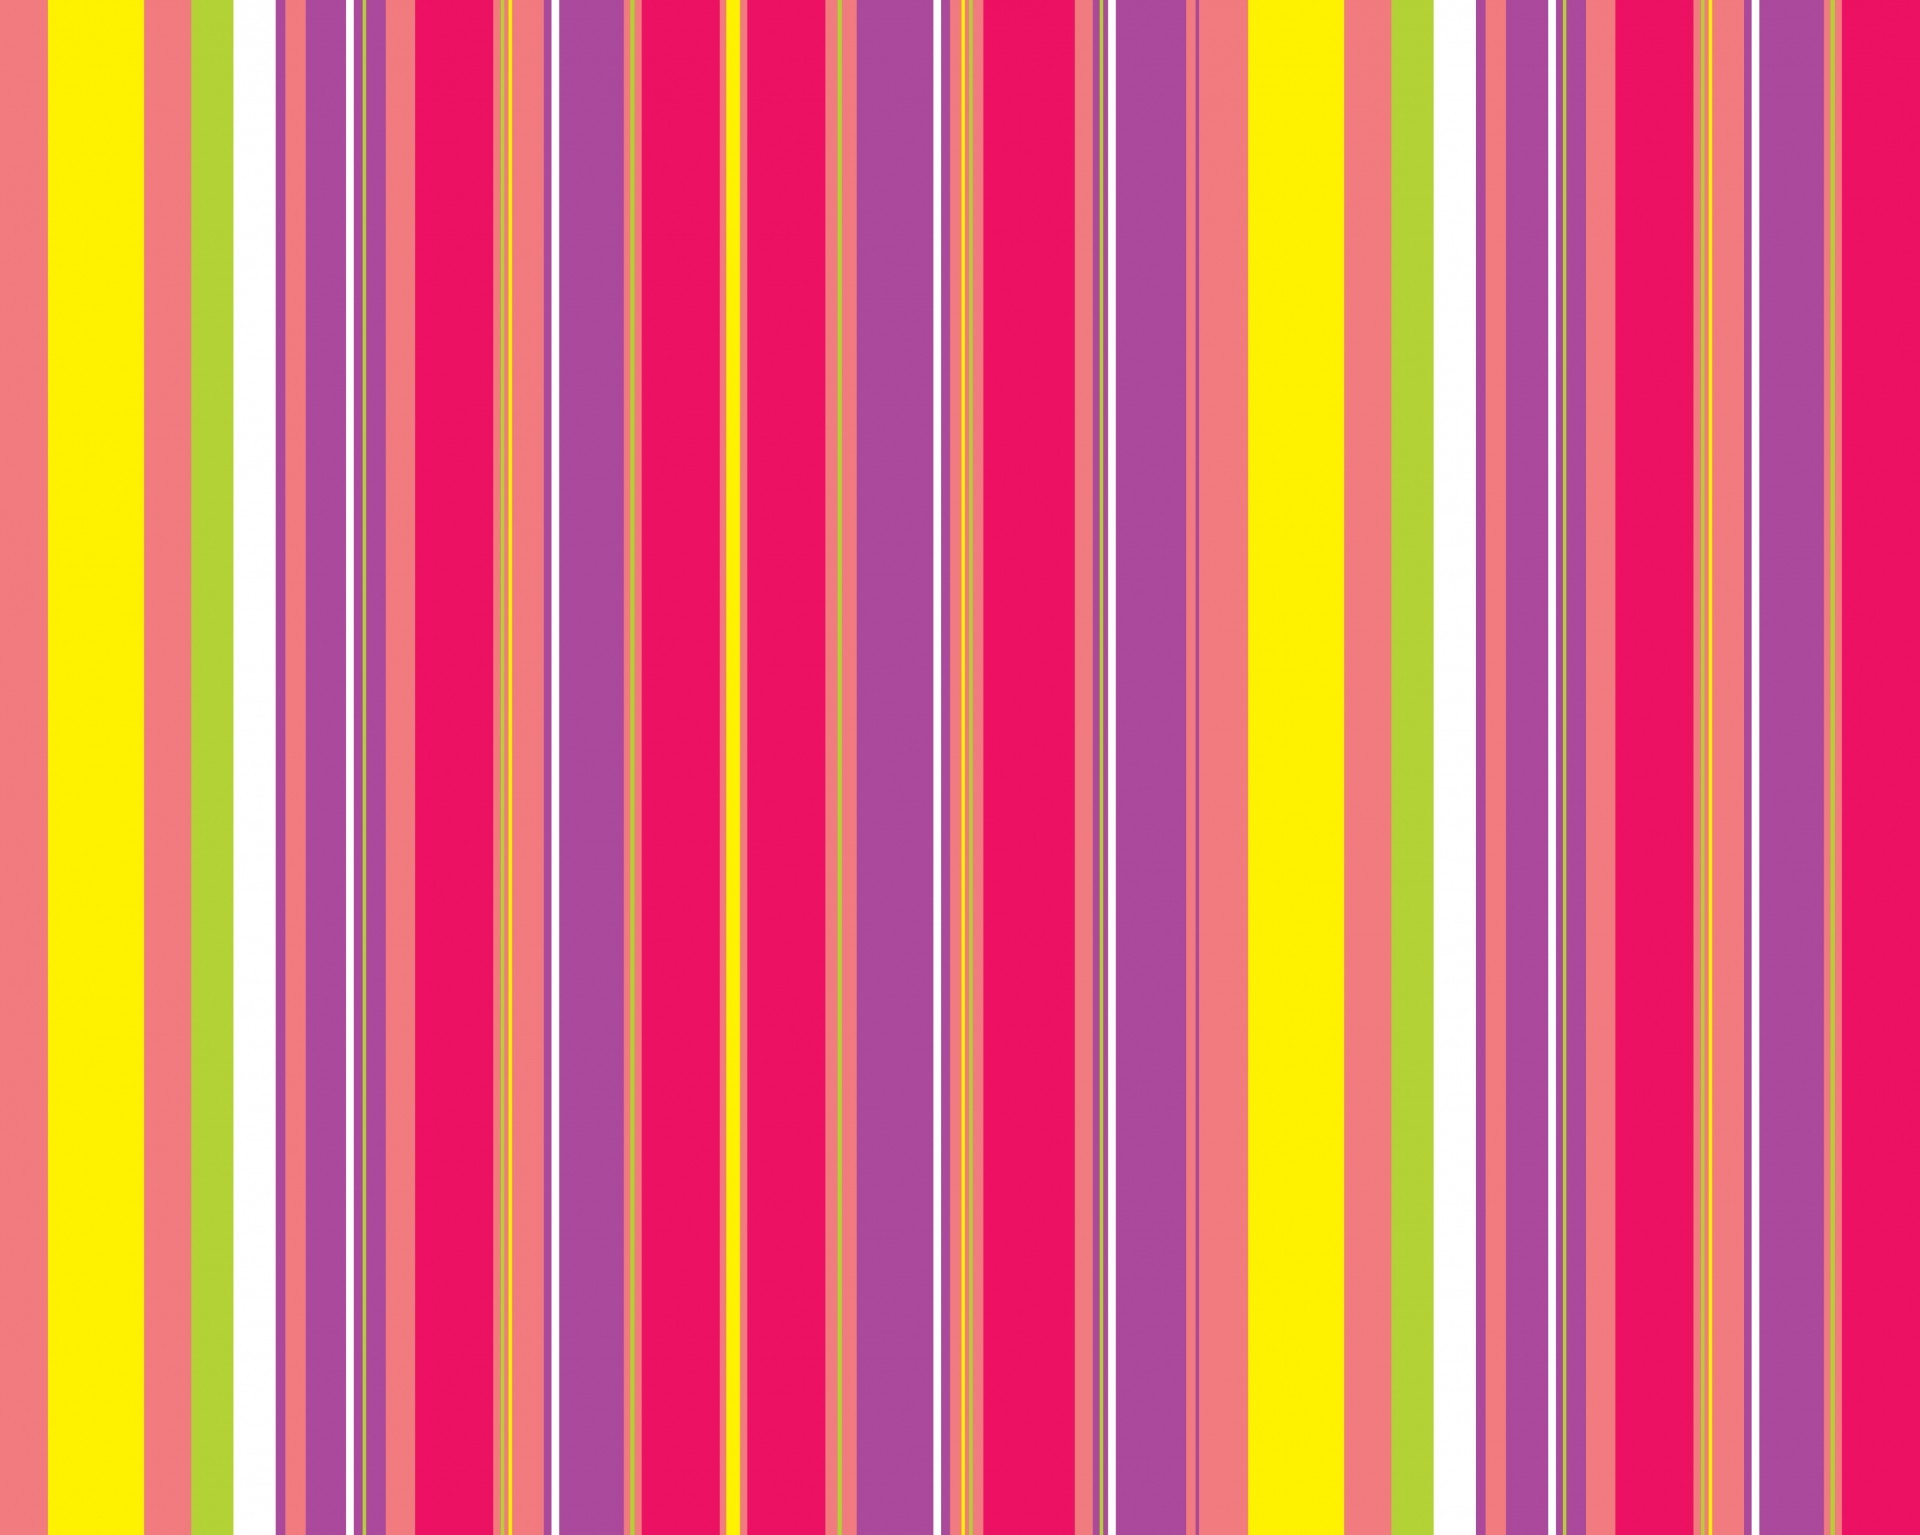 1920x1535 Colorful Stripes Stripes Colorful Background ...